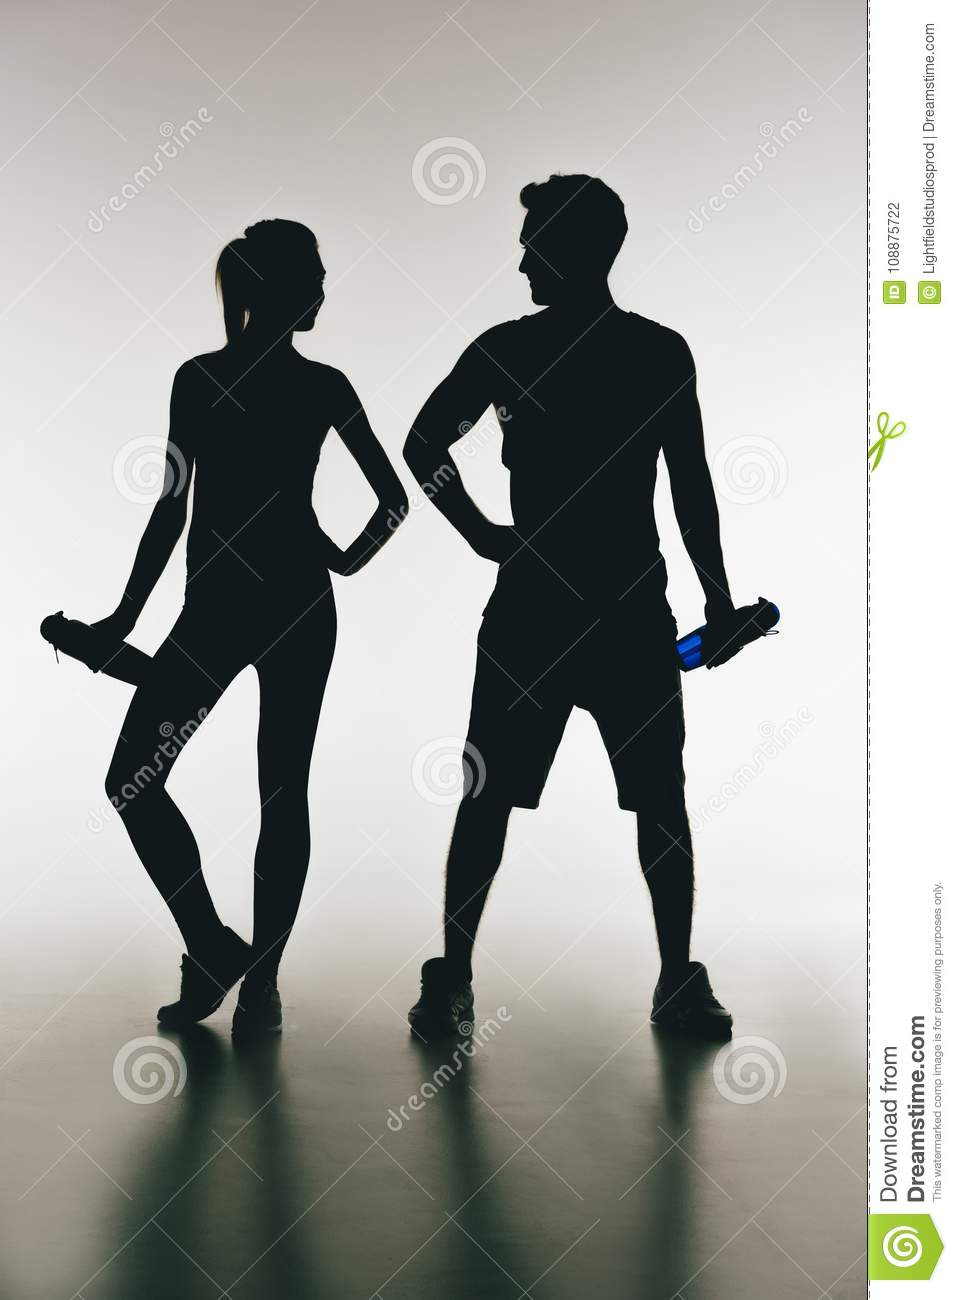 225 Fit Female Silhouettes Photos Free Royalty Free Stock Photos From Dreamstime Most relevant best selling latest uploads. dreamstime com